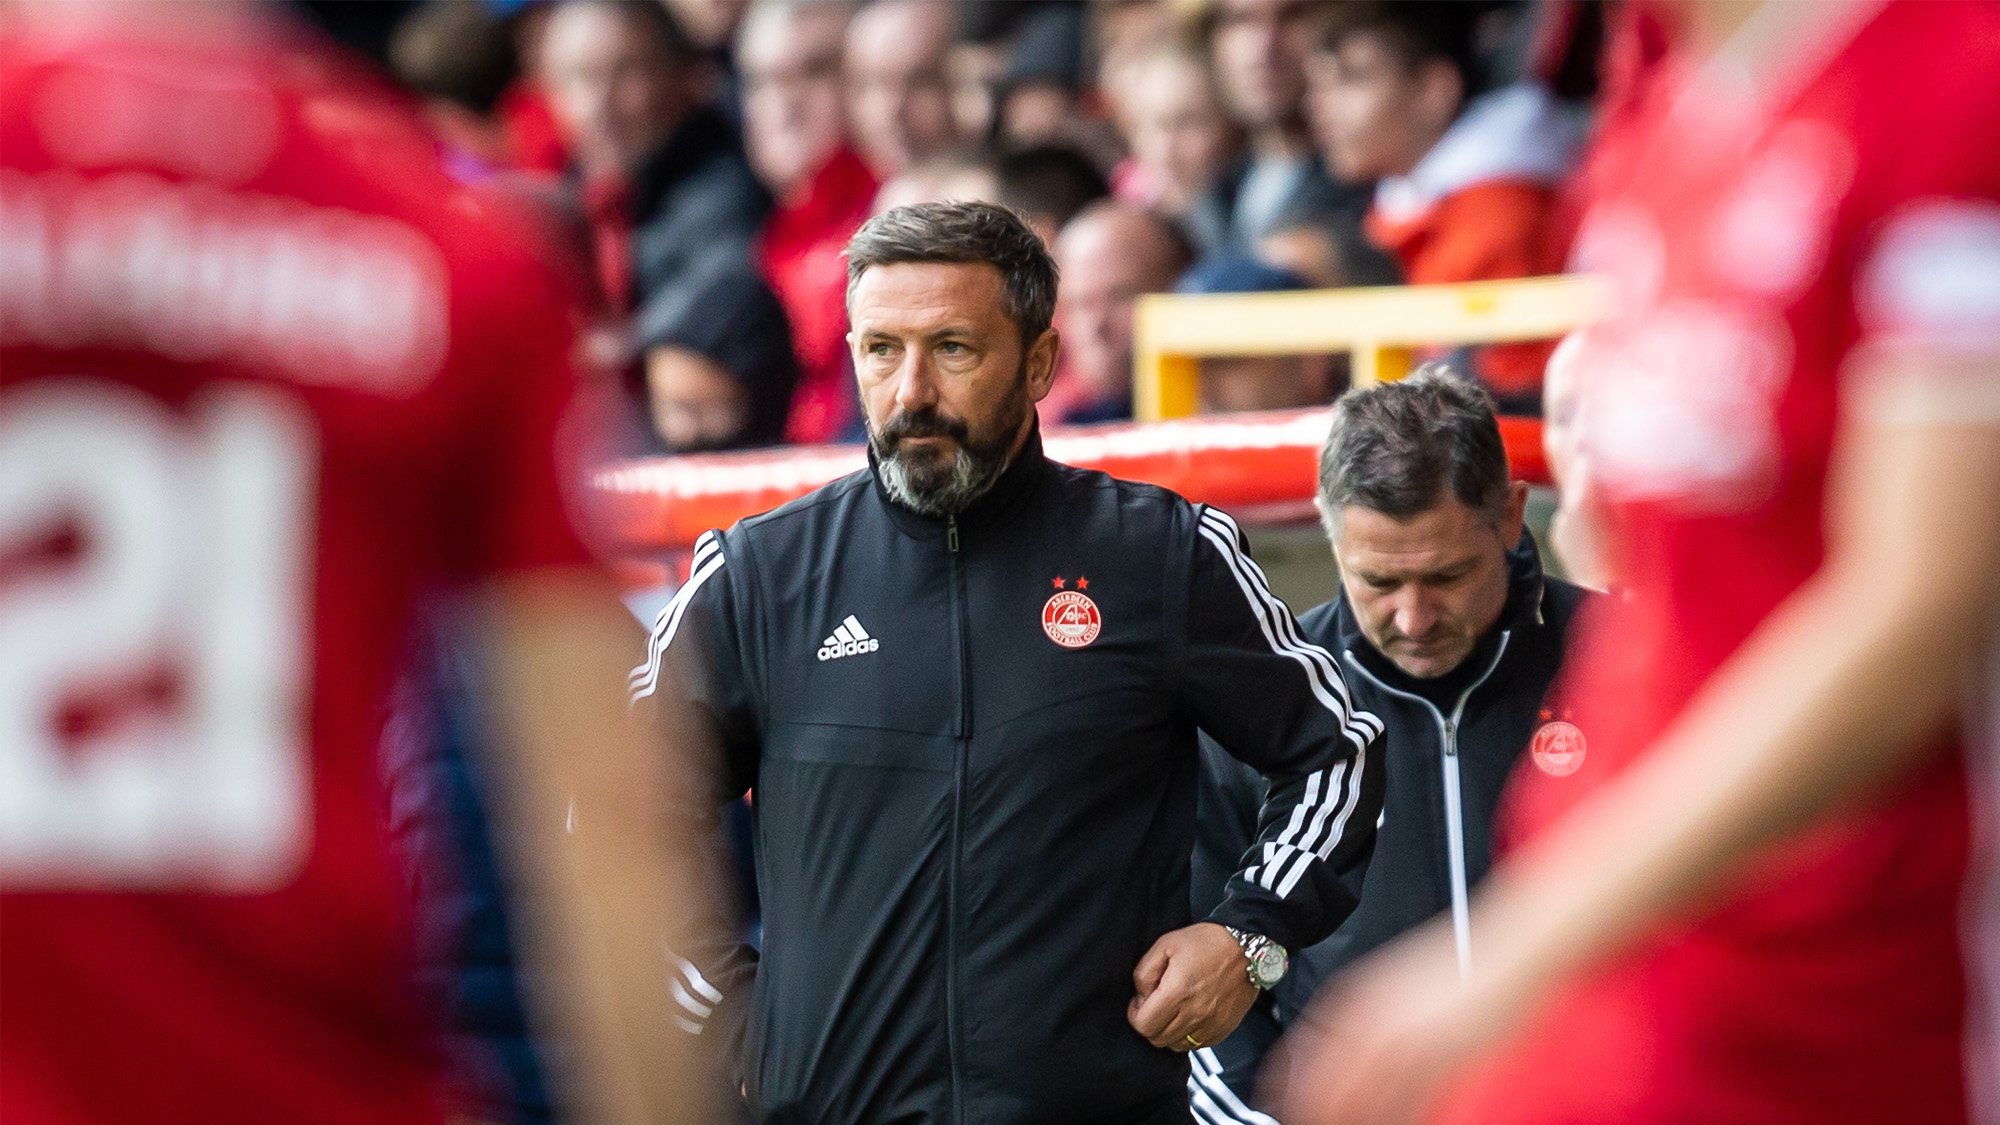 The Manager | Post Match Quotes & Injury Update